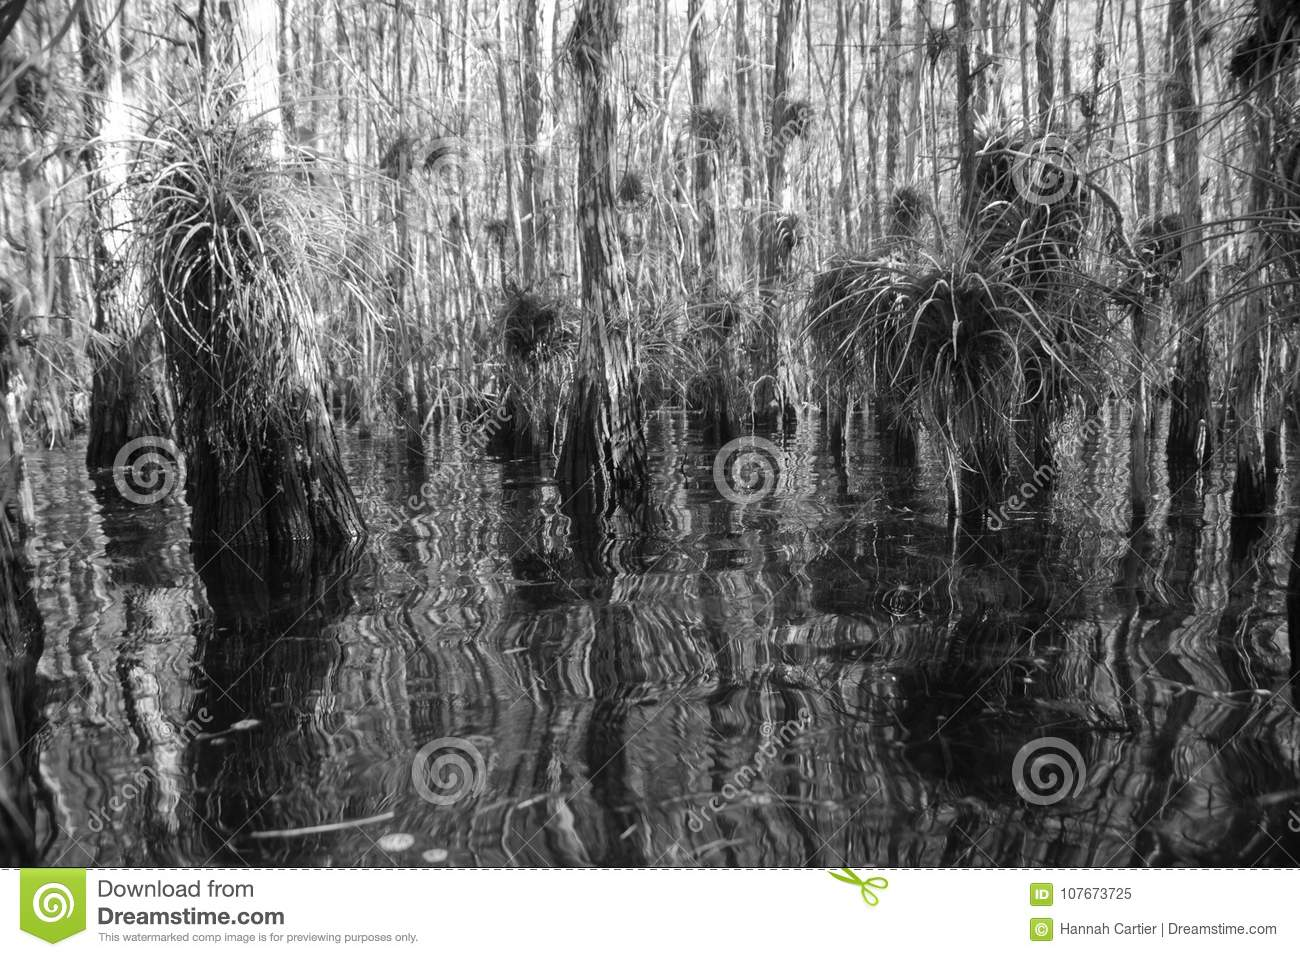 Sight walking through a dense swamp in the florida everglades